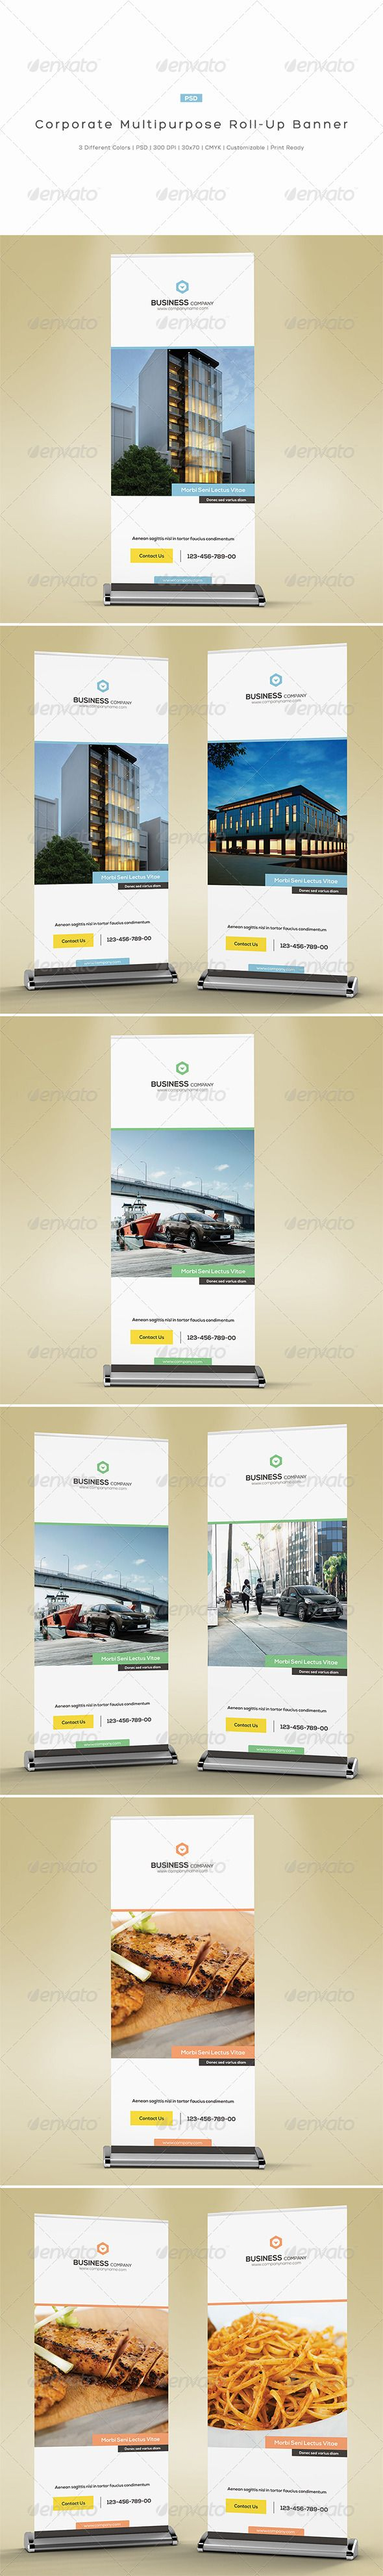 Corporate Multipurpose Roll-Up Banner